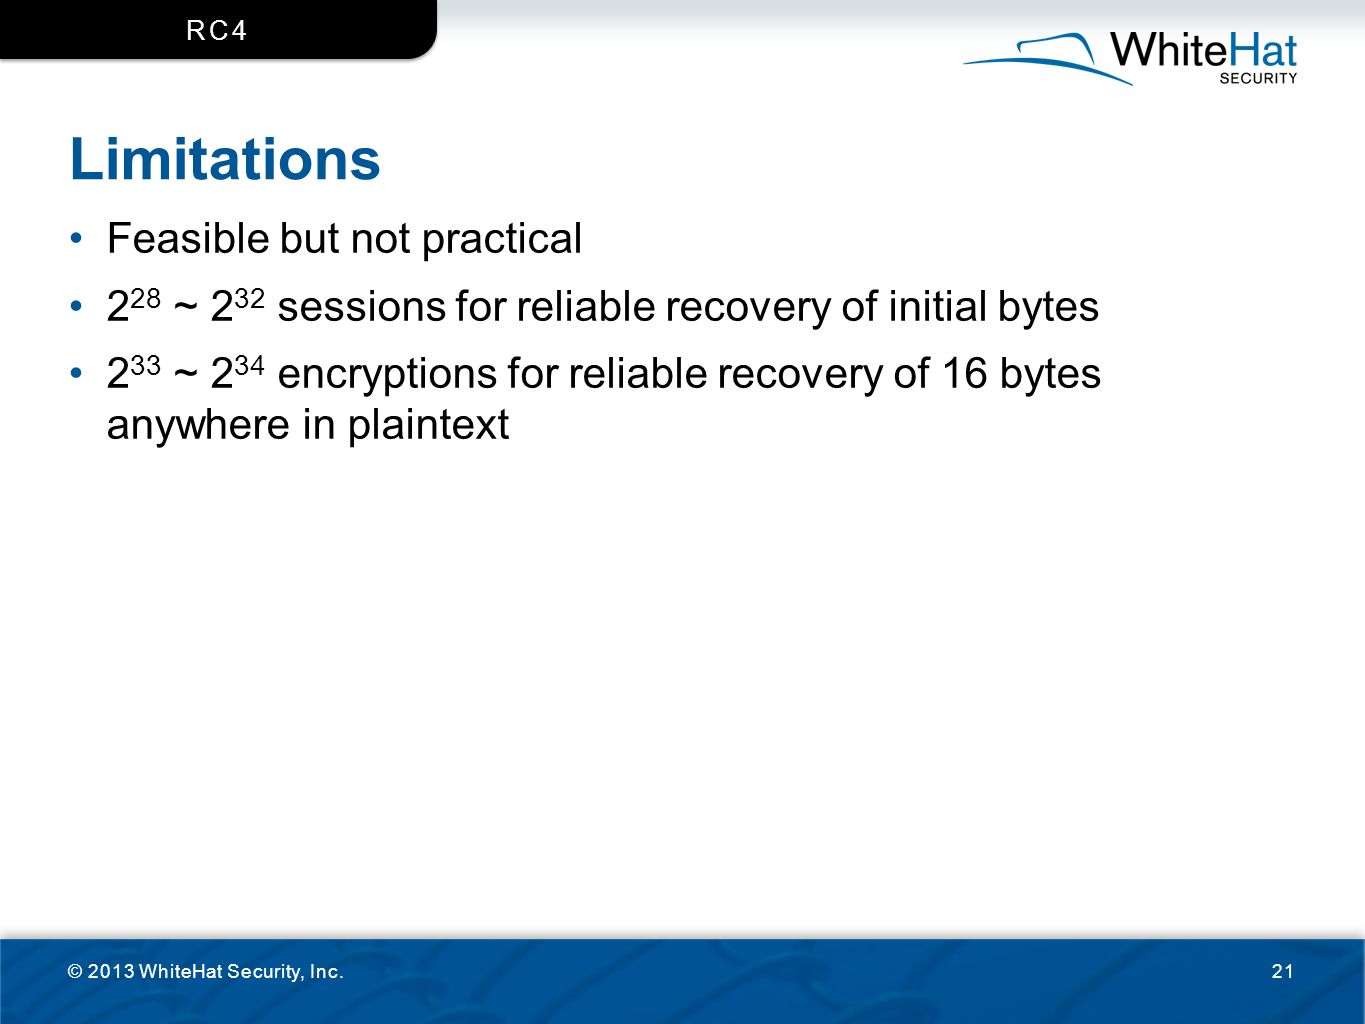 Limitations Feasible but not practical 2 28 ~ 2 32 sessions for reliable recovery of initial bytes 2 33 ~ 2 34 encryptions for reliable recovery of 16